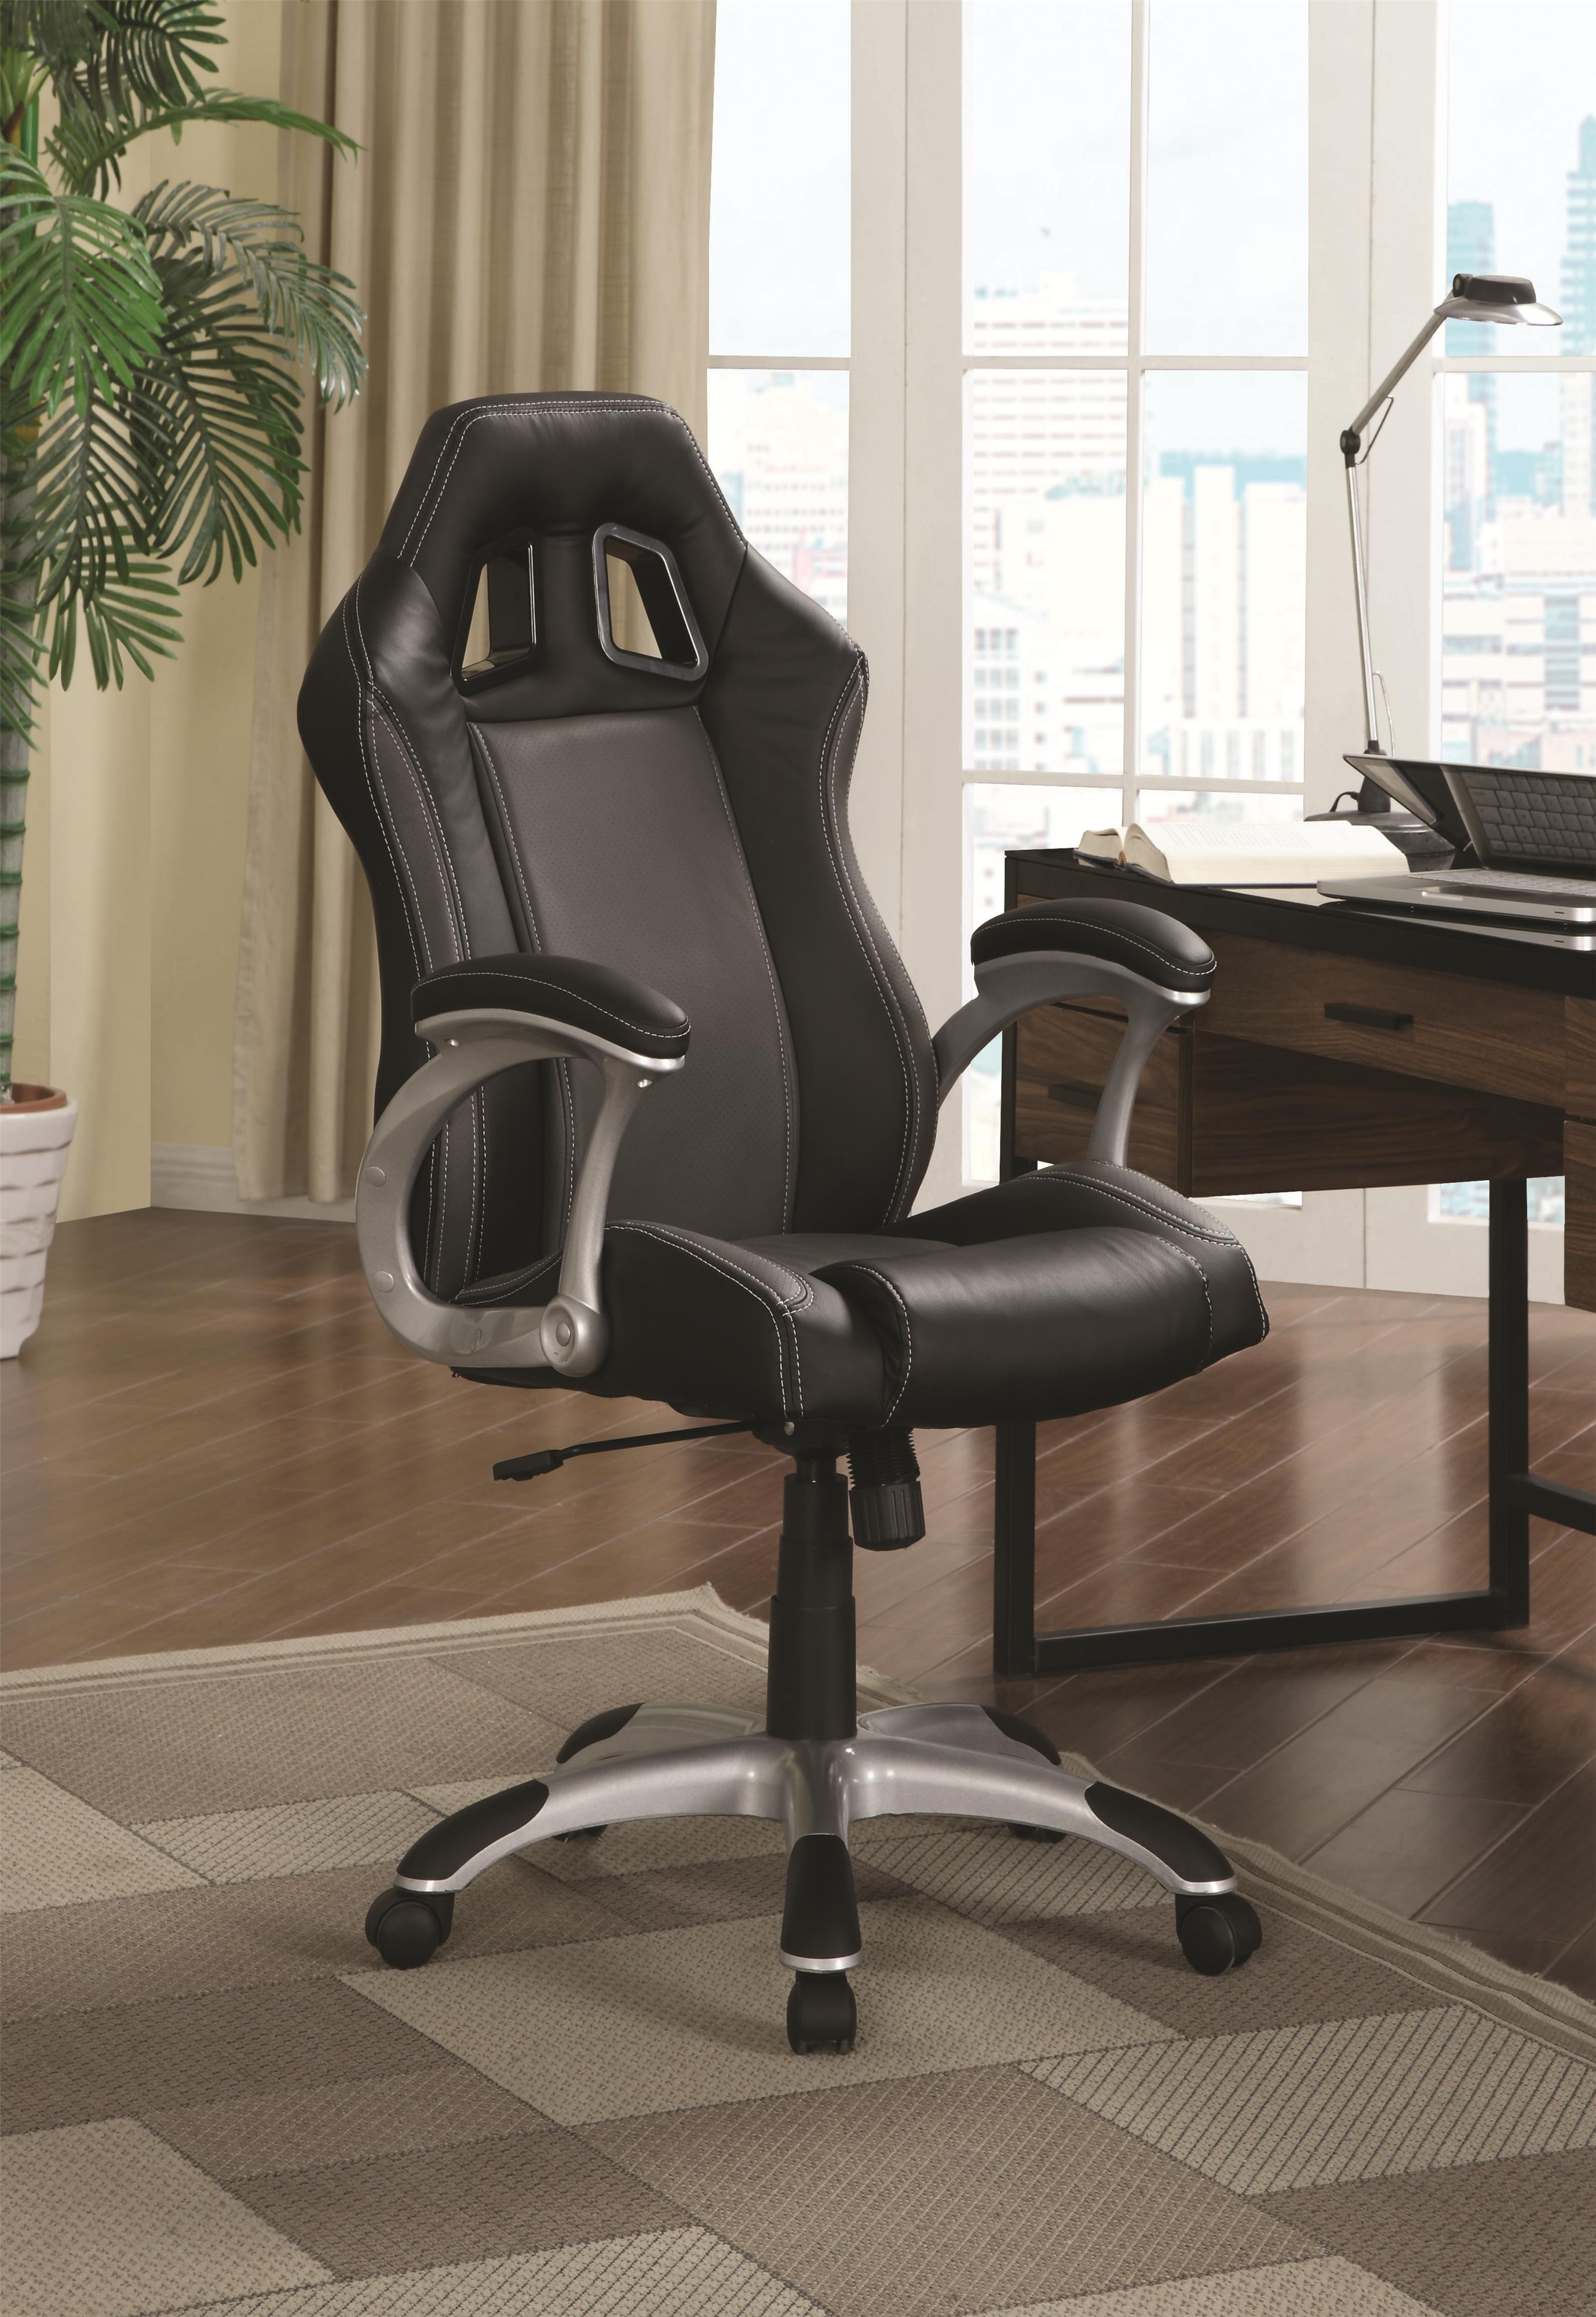 office chair dealers near me relax the back mobility lift coaster chairs 800046 task with air